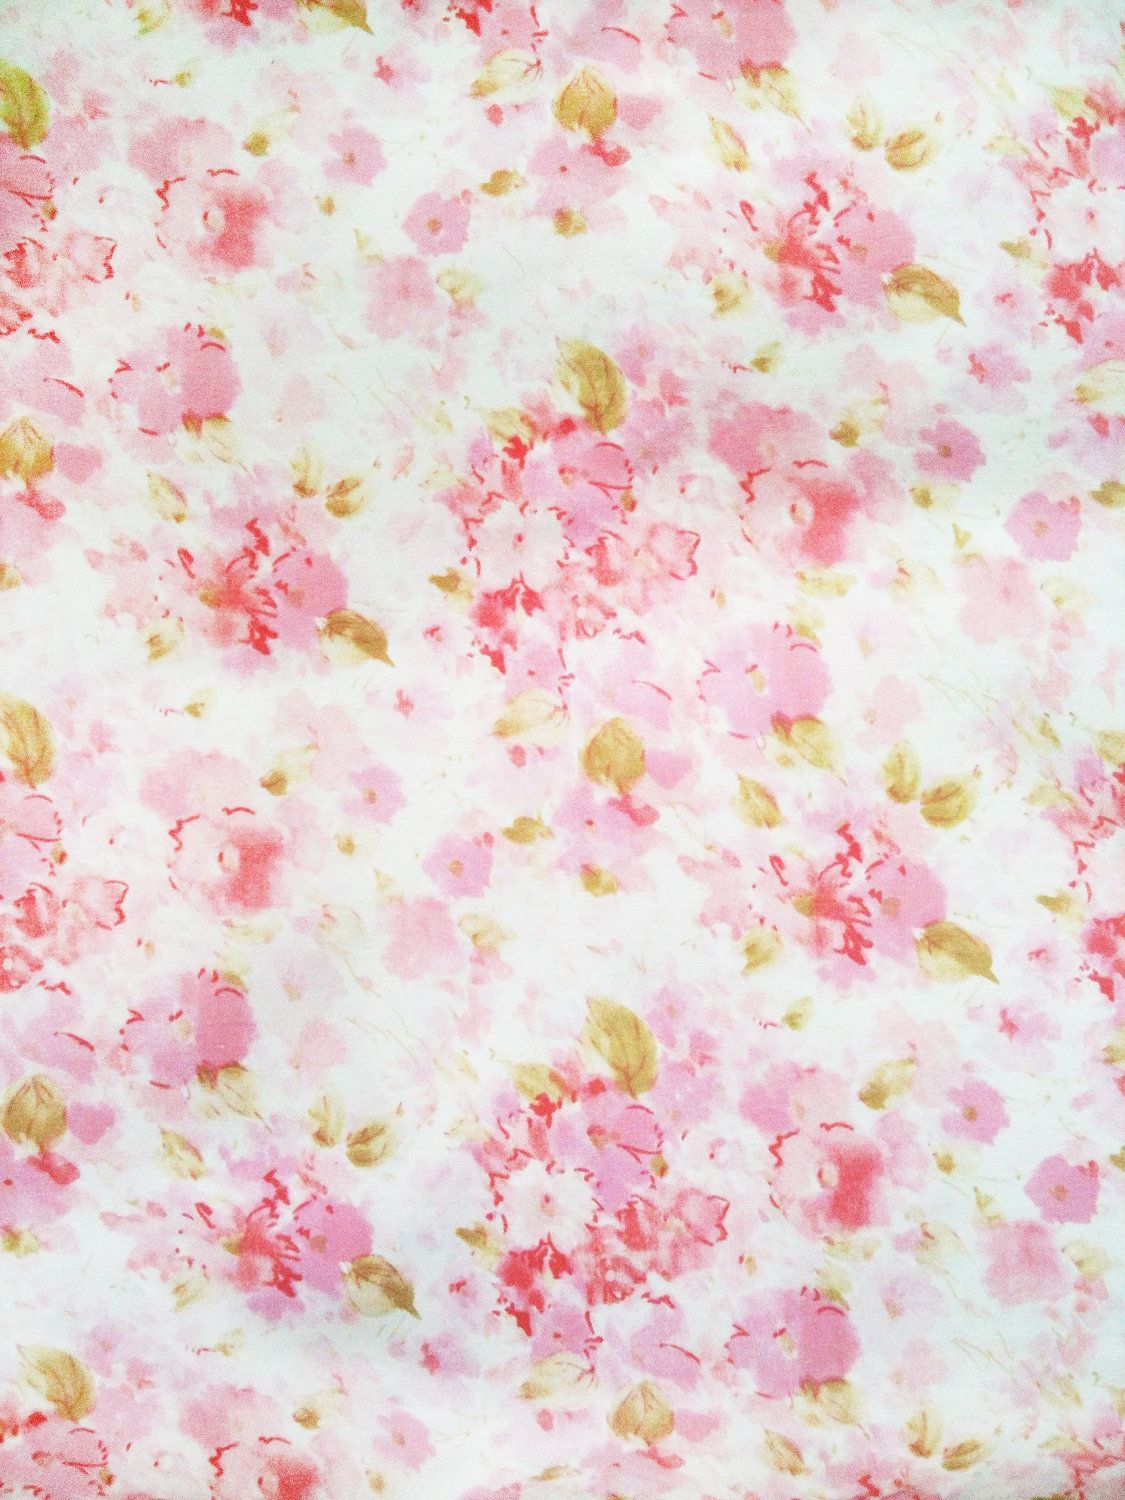 light pink floral background - photo #17